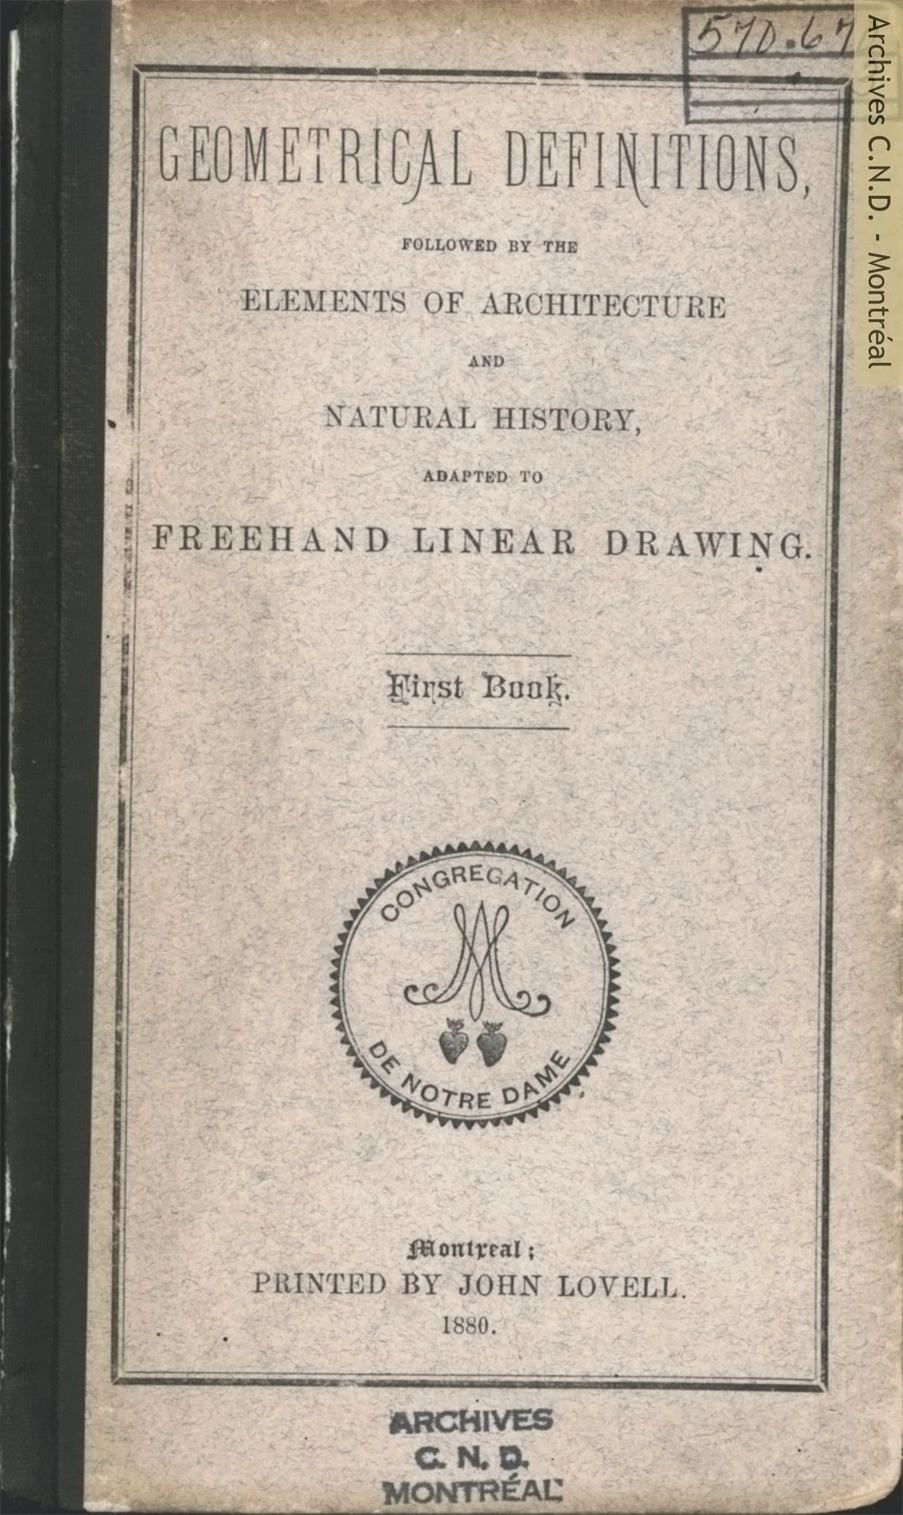 Page couverture - Geometrical definitions, followed by the elements of architecture and natural history, adapted to Freehand Linear Drawing - First book